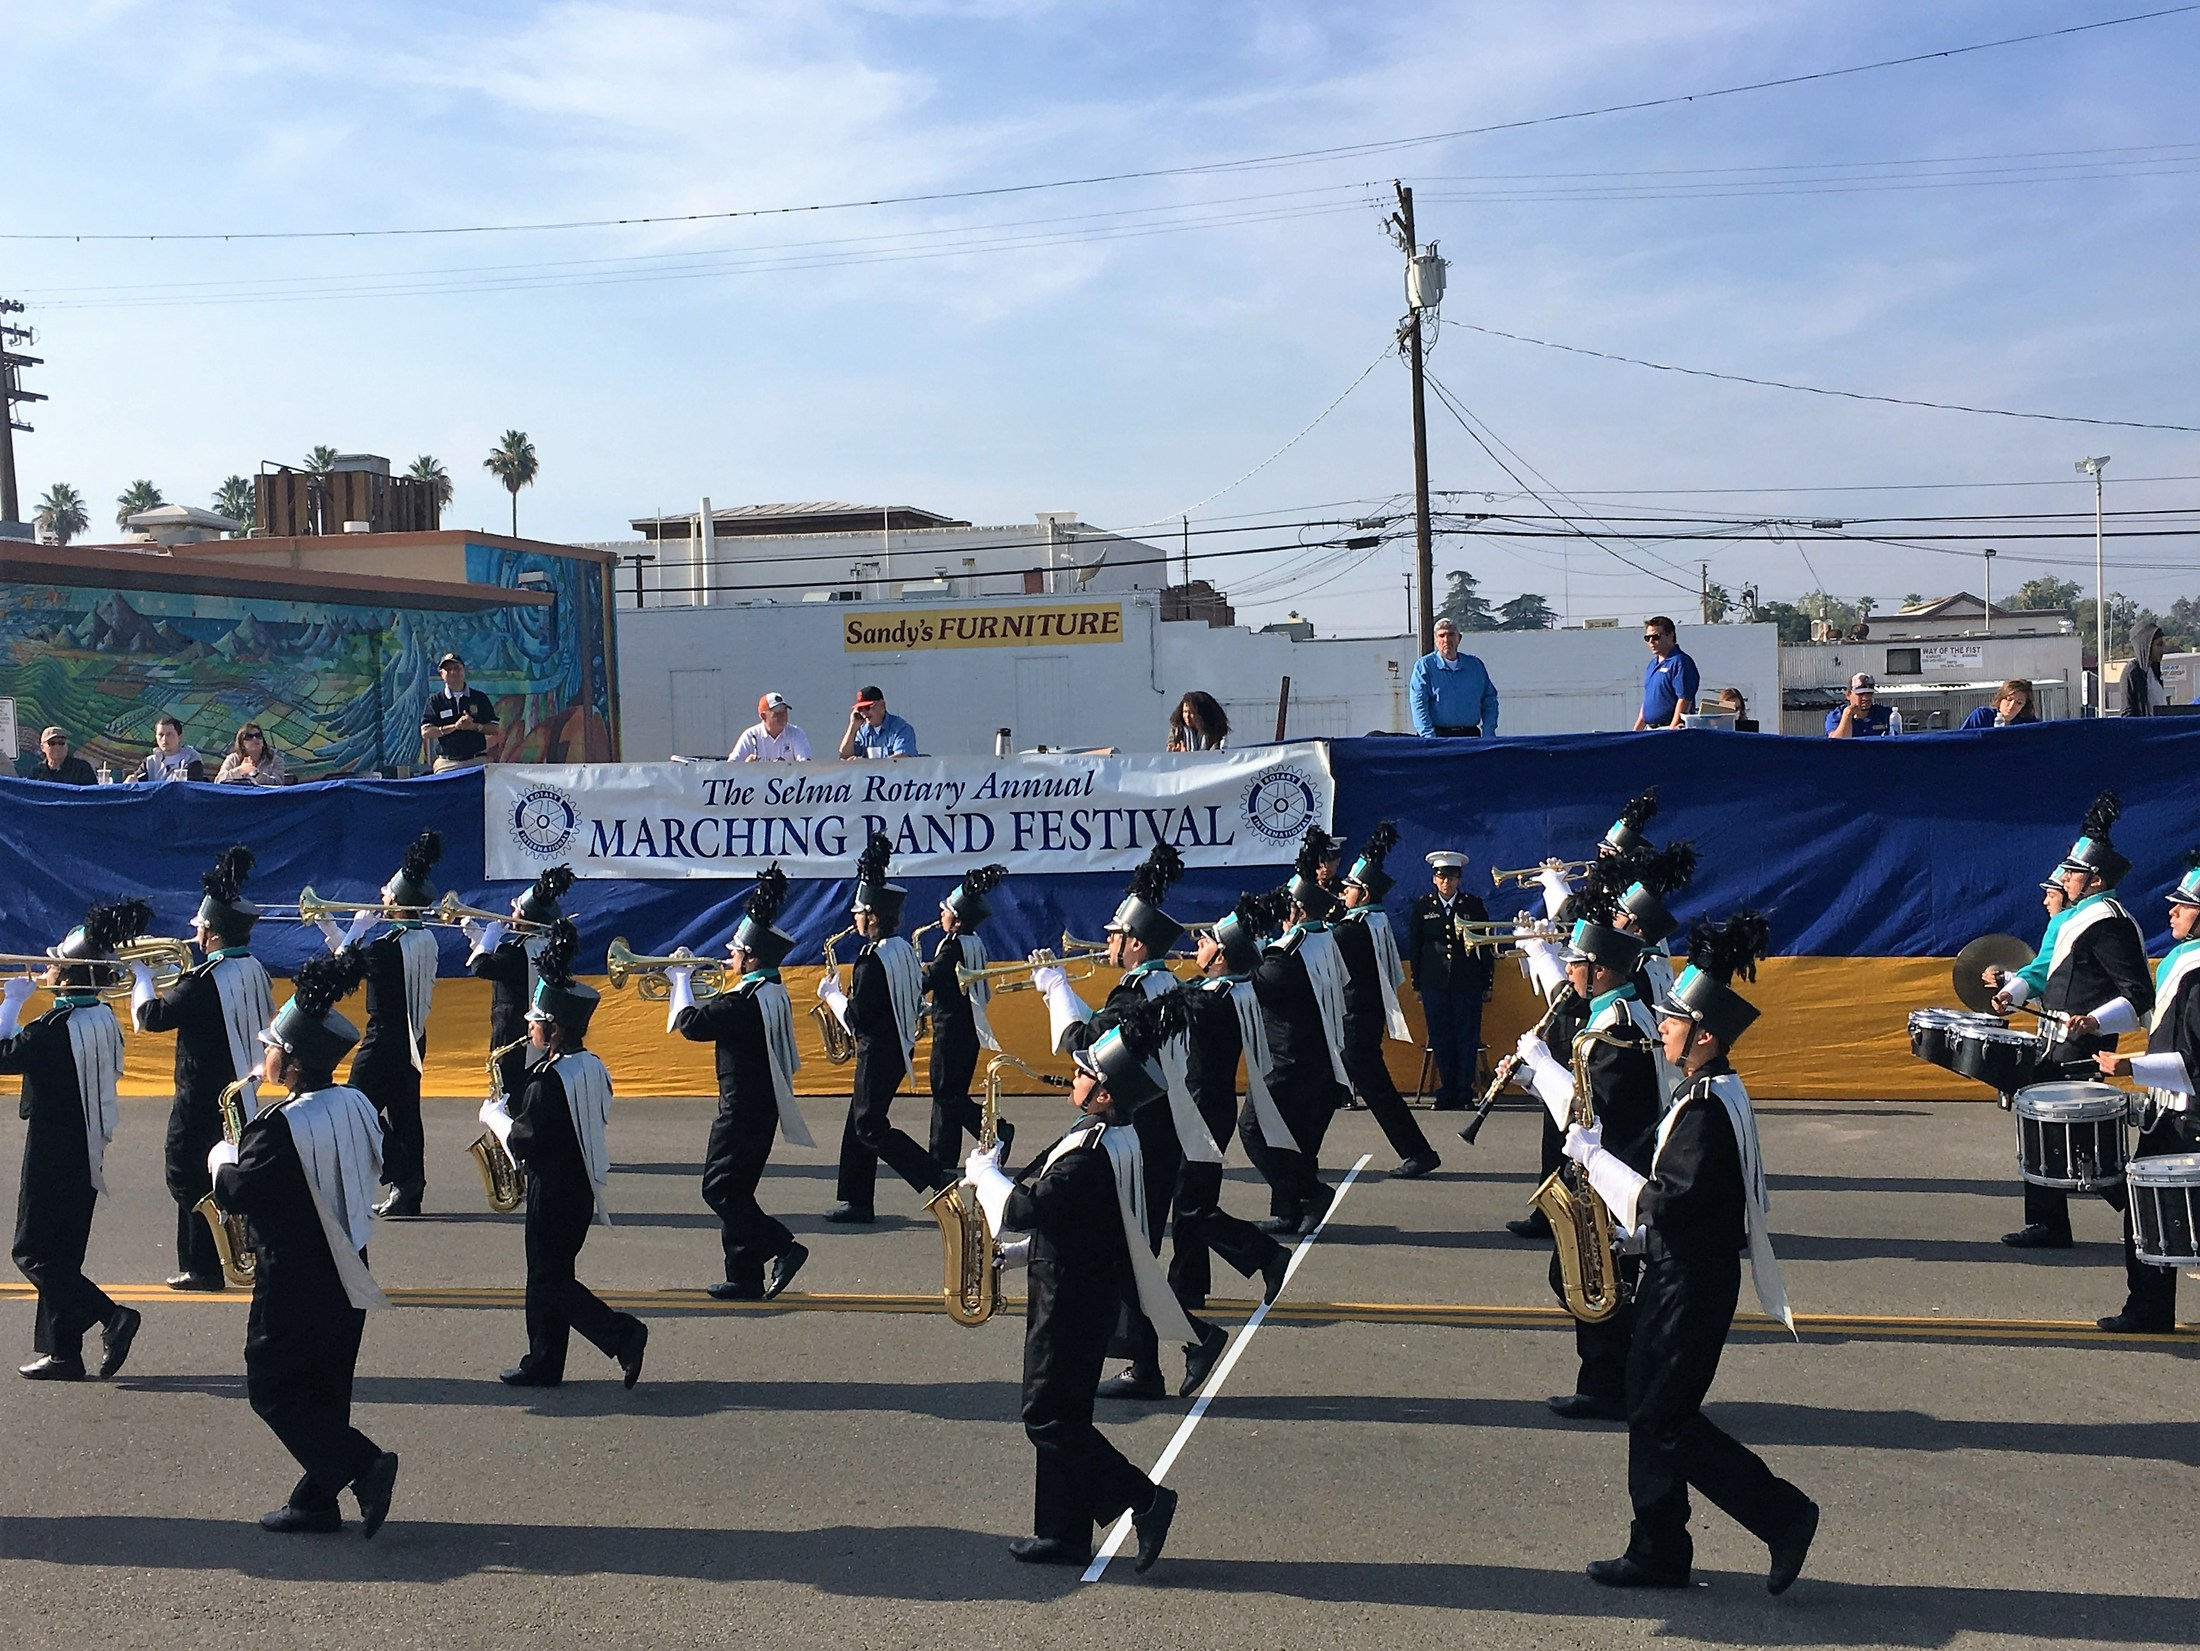 OCHS Band at a Parade